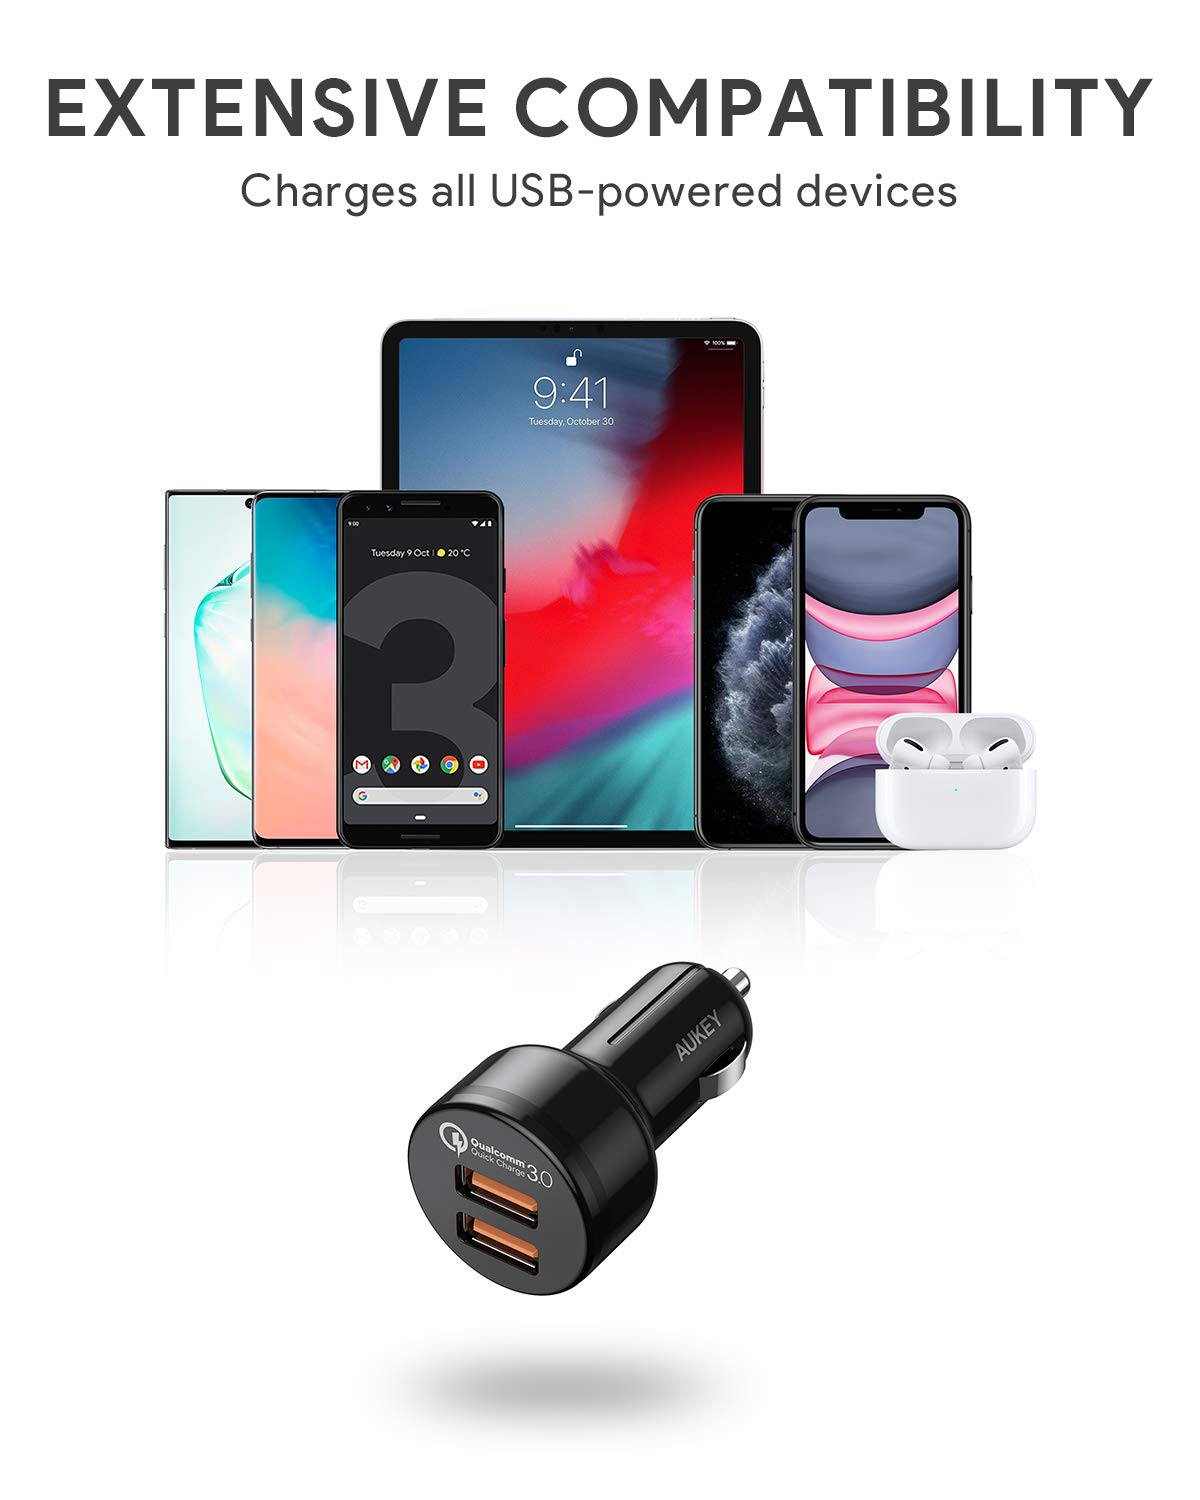 iPad AirPods Pro Samsung Note10+ // S10 and More Google Pixel 4 XL AUKEY 36W Dual Port Quick Charge 3.0 USB Cell Phone Car Adapter for iPhone 11 Pro Max Fast Car Charger